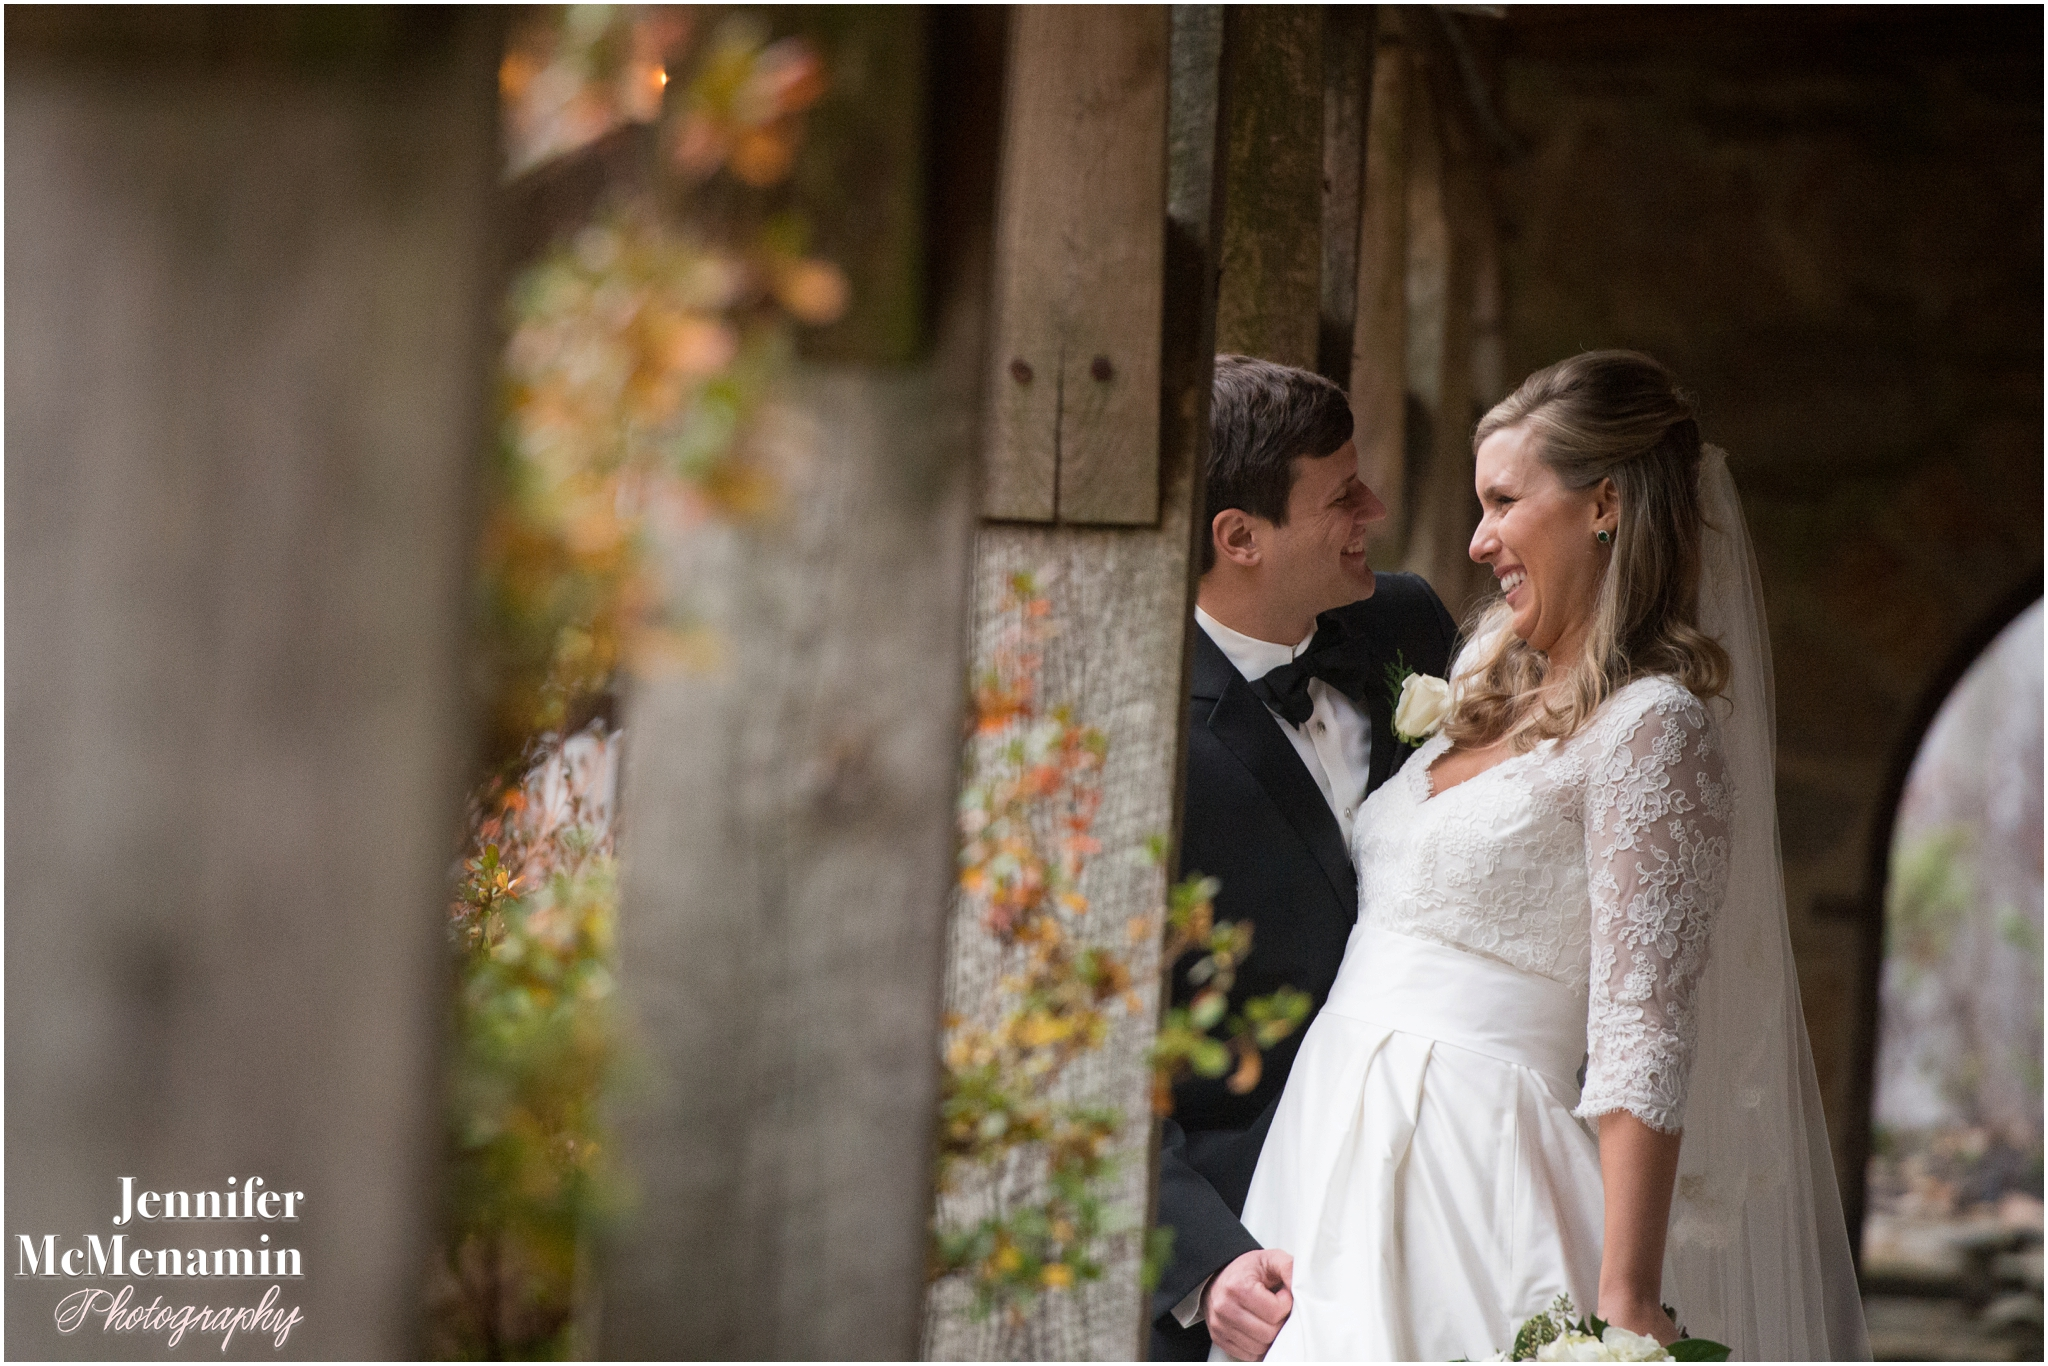 0073_RyanClemmens_02057-0562_JenniferMcMenaminPhotography_Immaculate-Conception-Church_The-Cloisters_Baltimore-wedding-photography_Baltimore-wedding-photographer